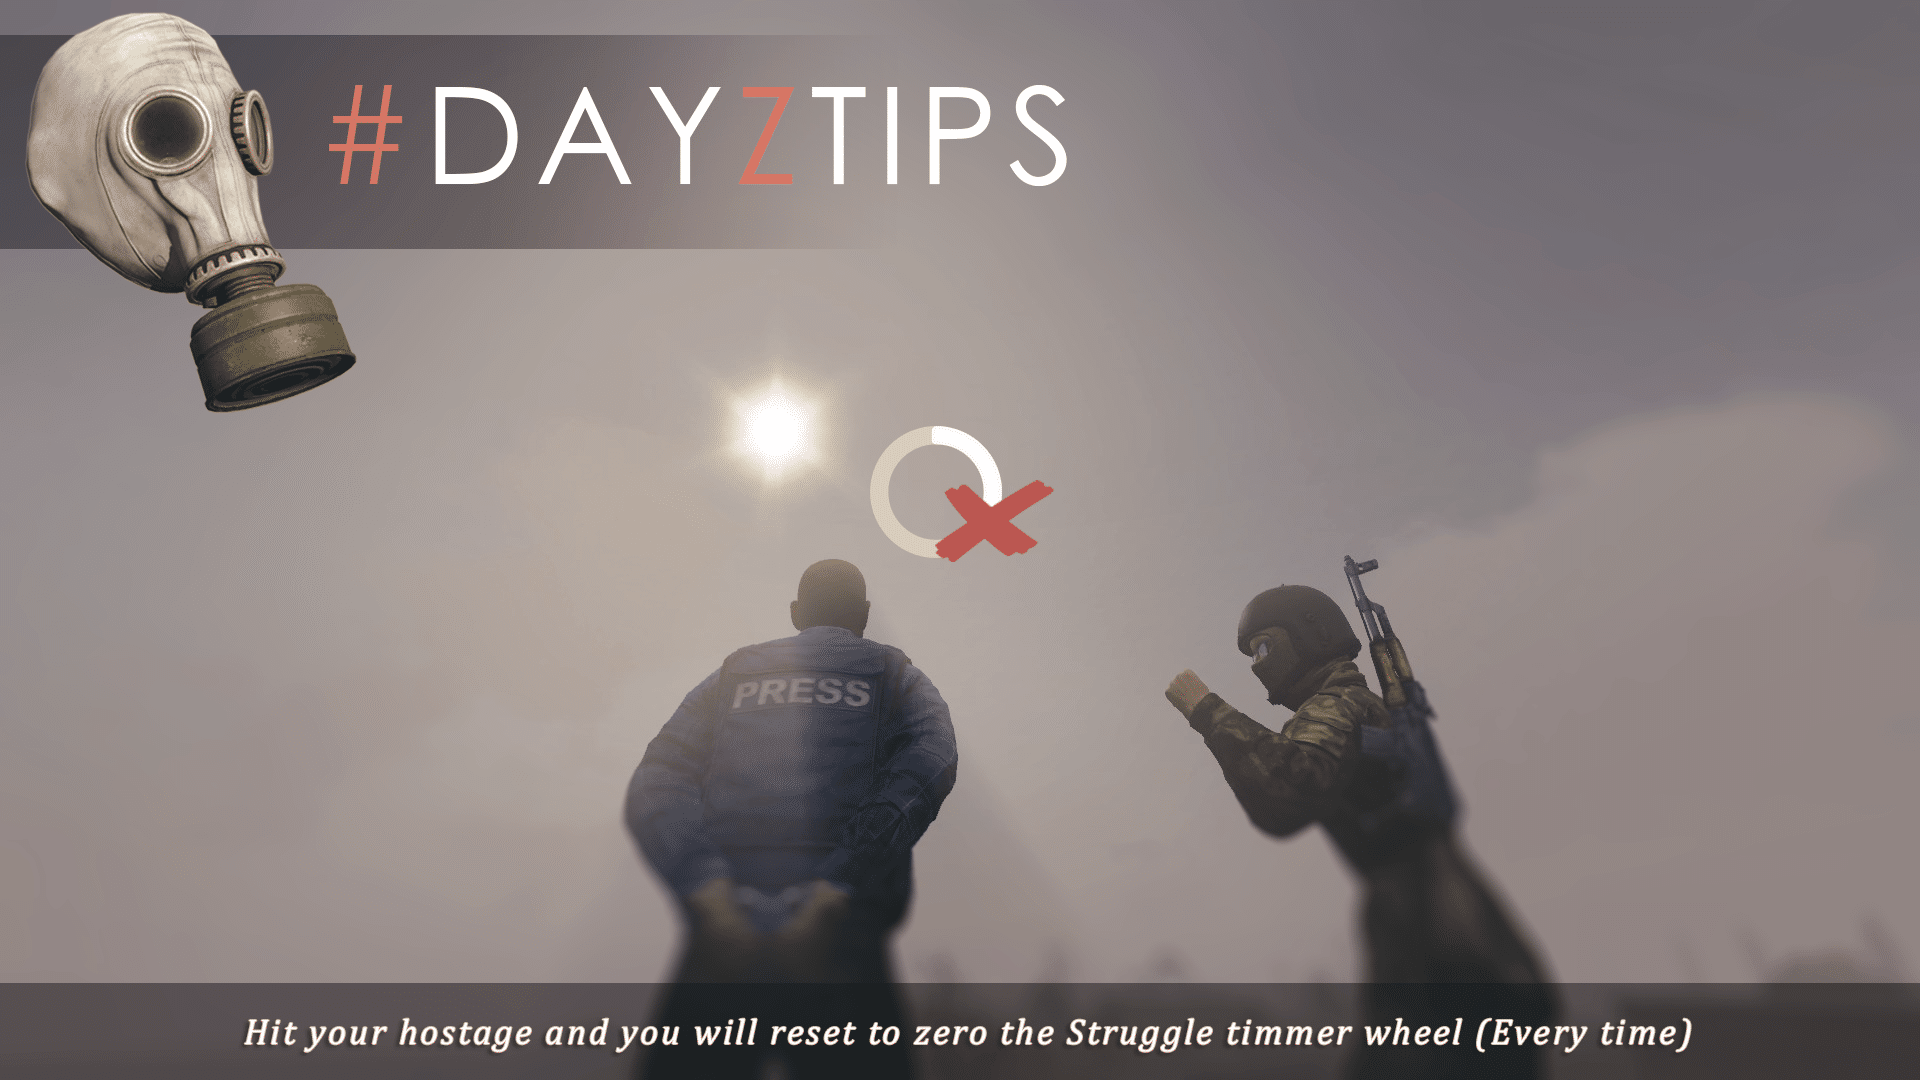 DayzTips Hit your hostages